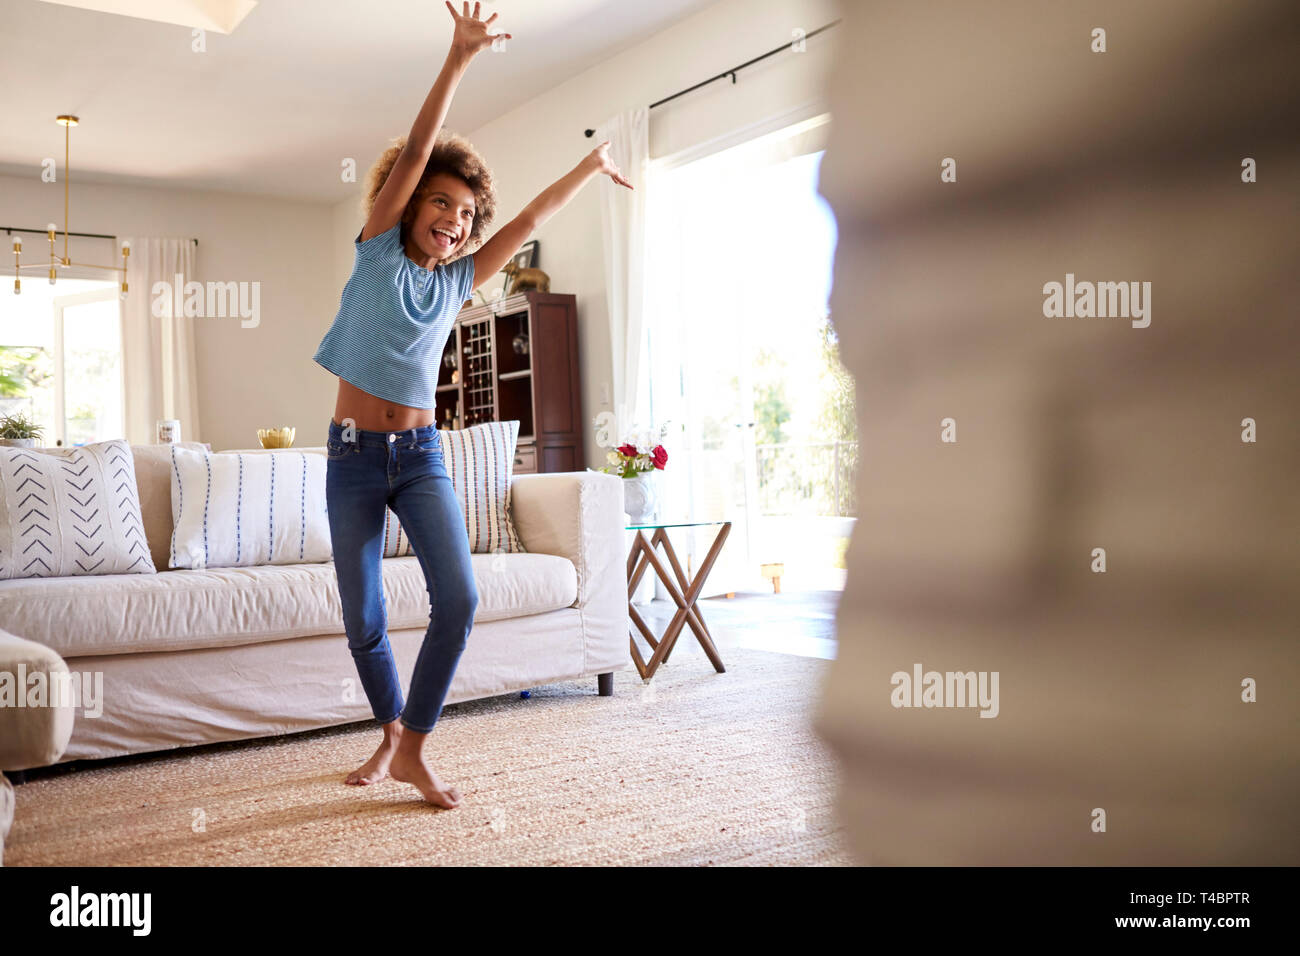 Pre-teen girl dancing and singing along to music on TV in the living room at home, three quarter length - Stock Image